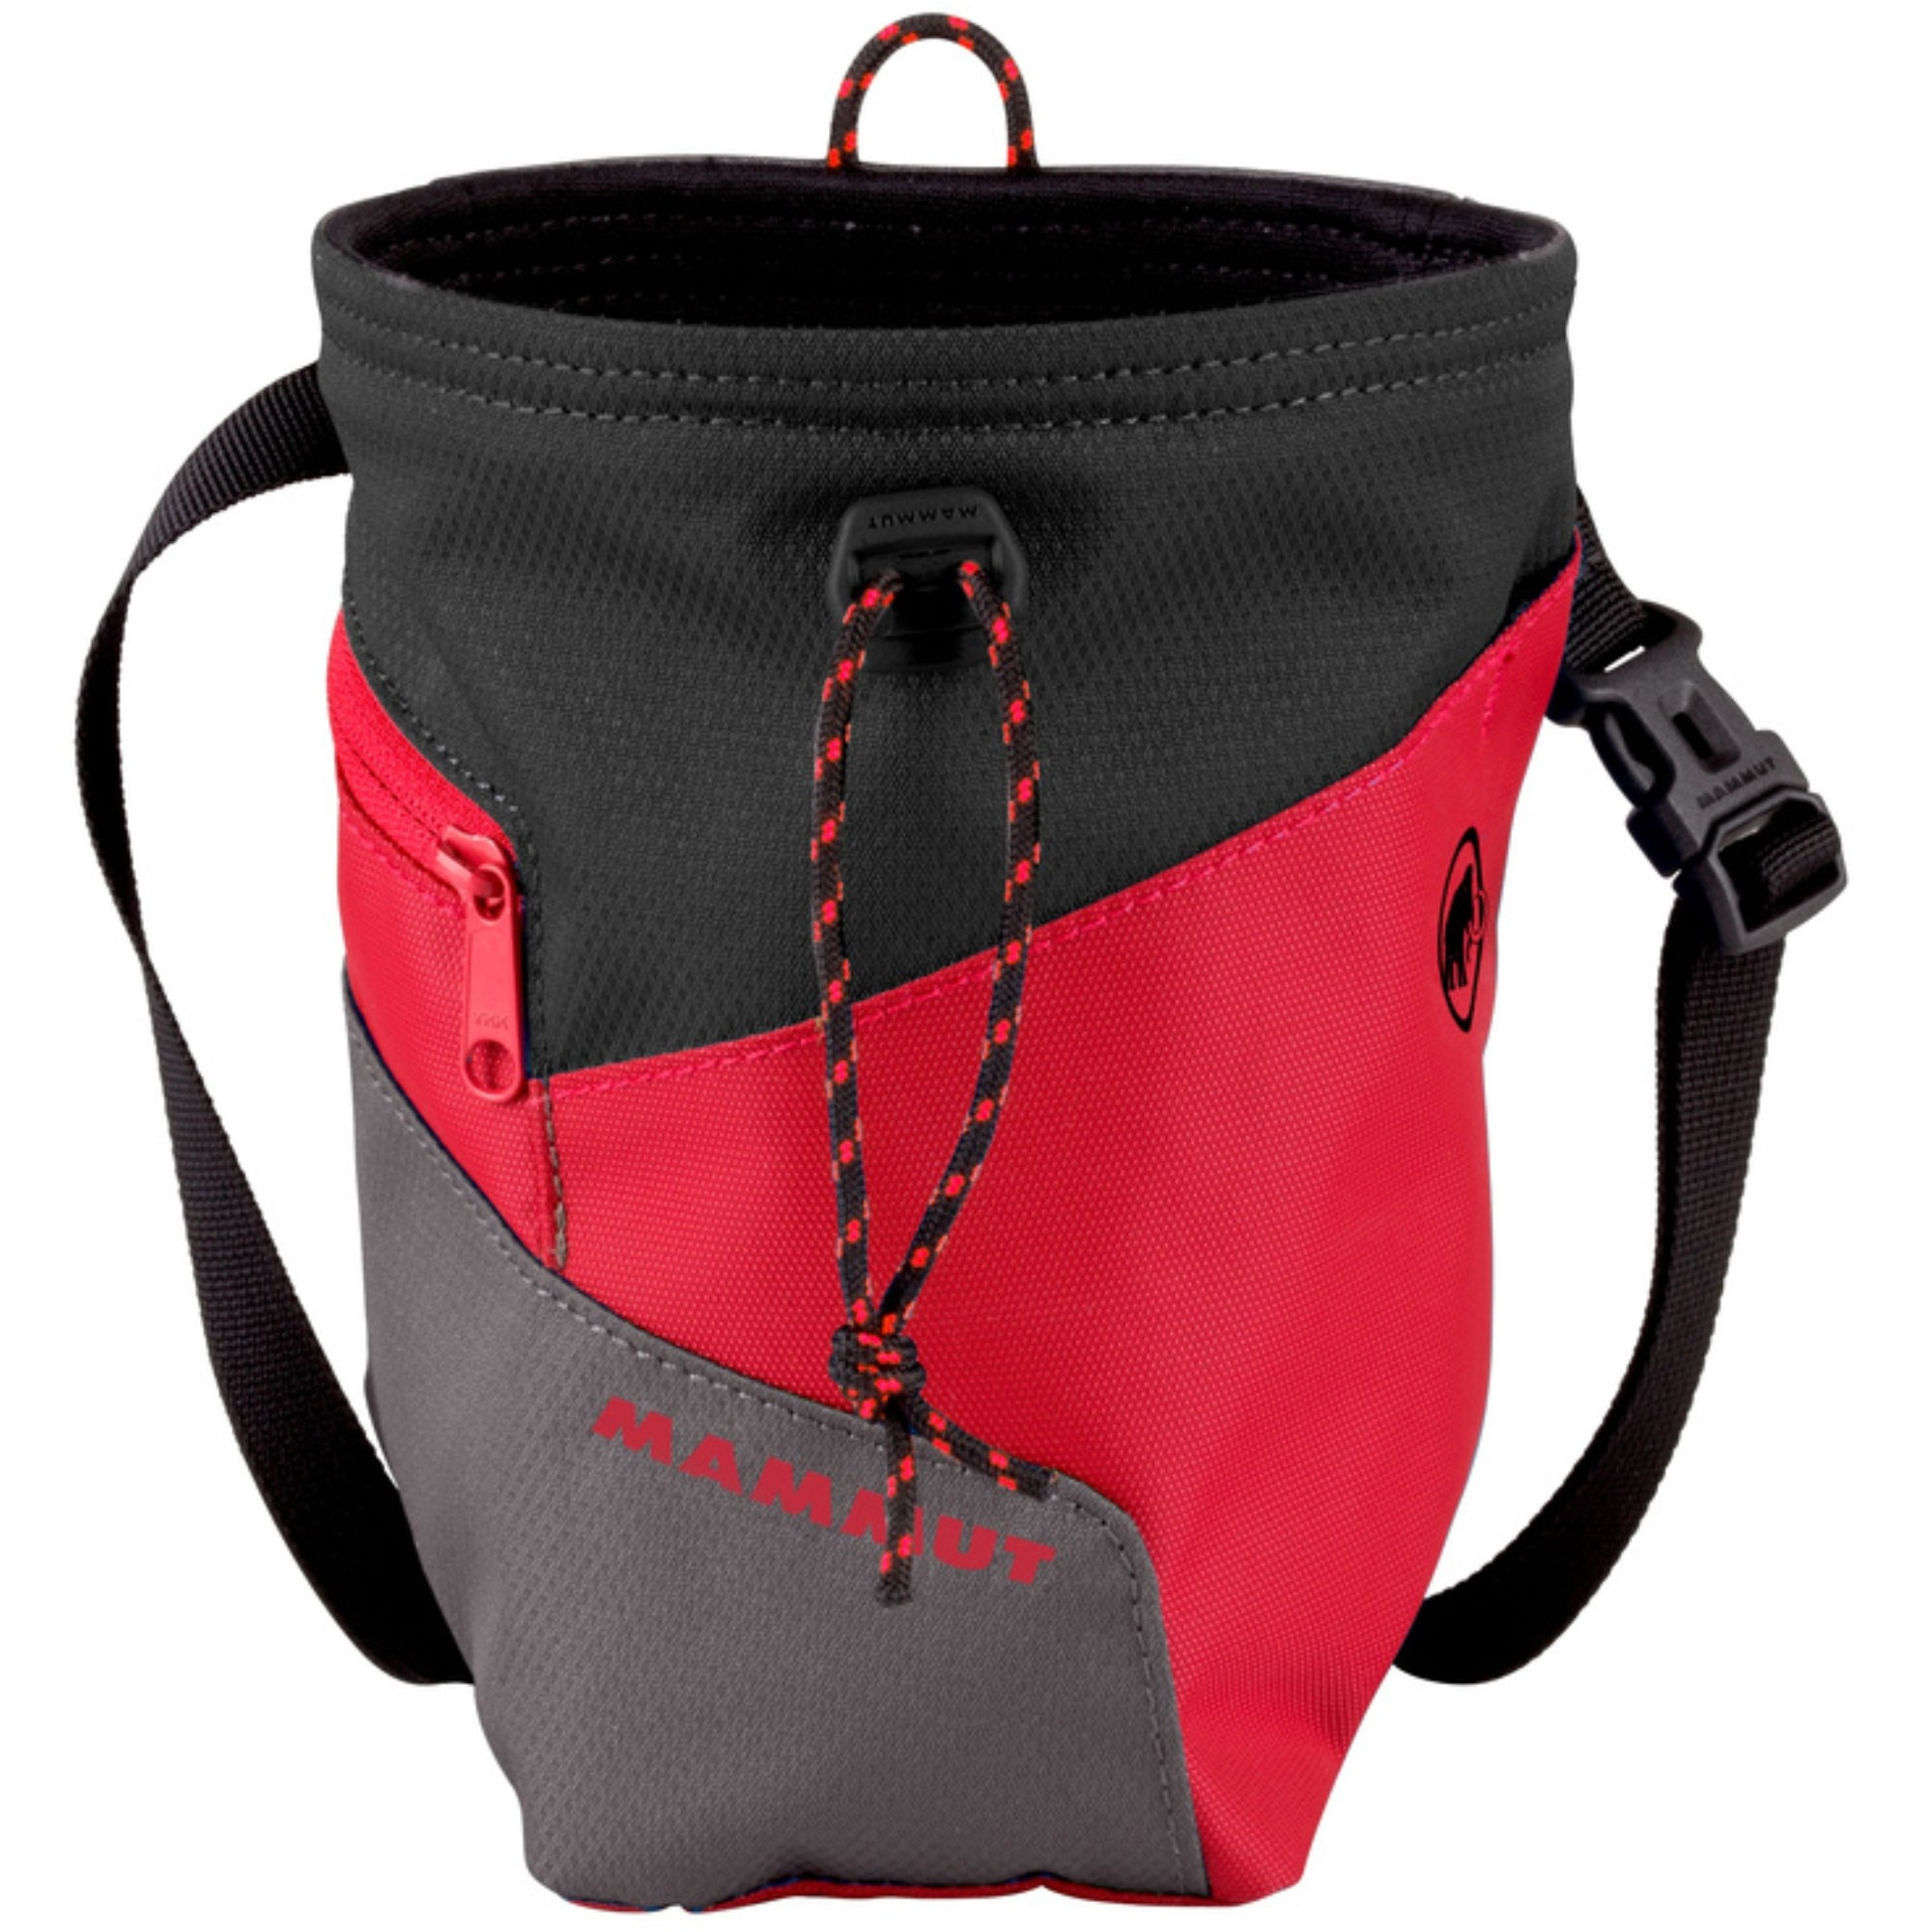 Mammut Rider Chalk Bag - Inferno